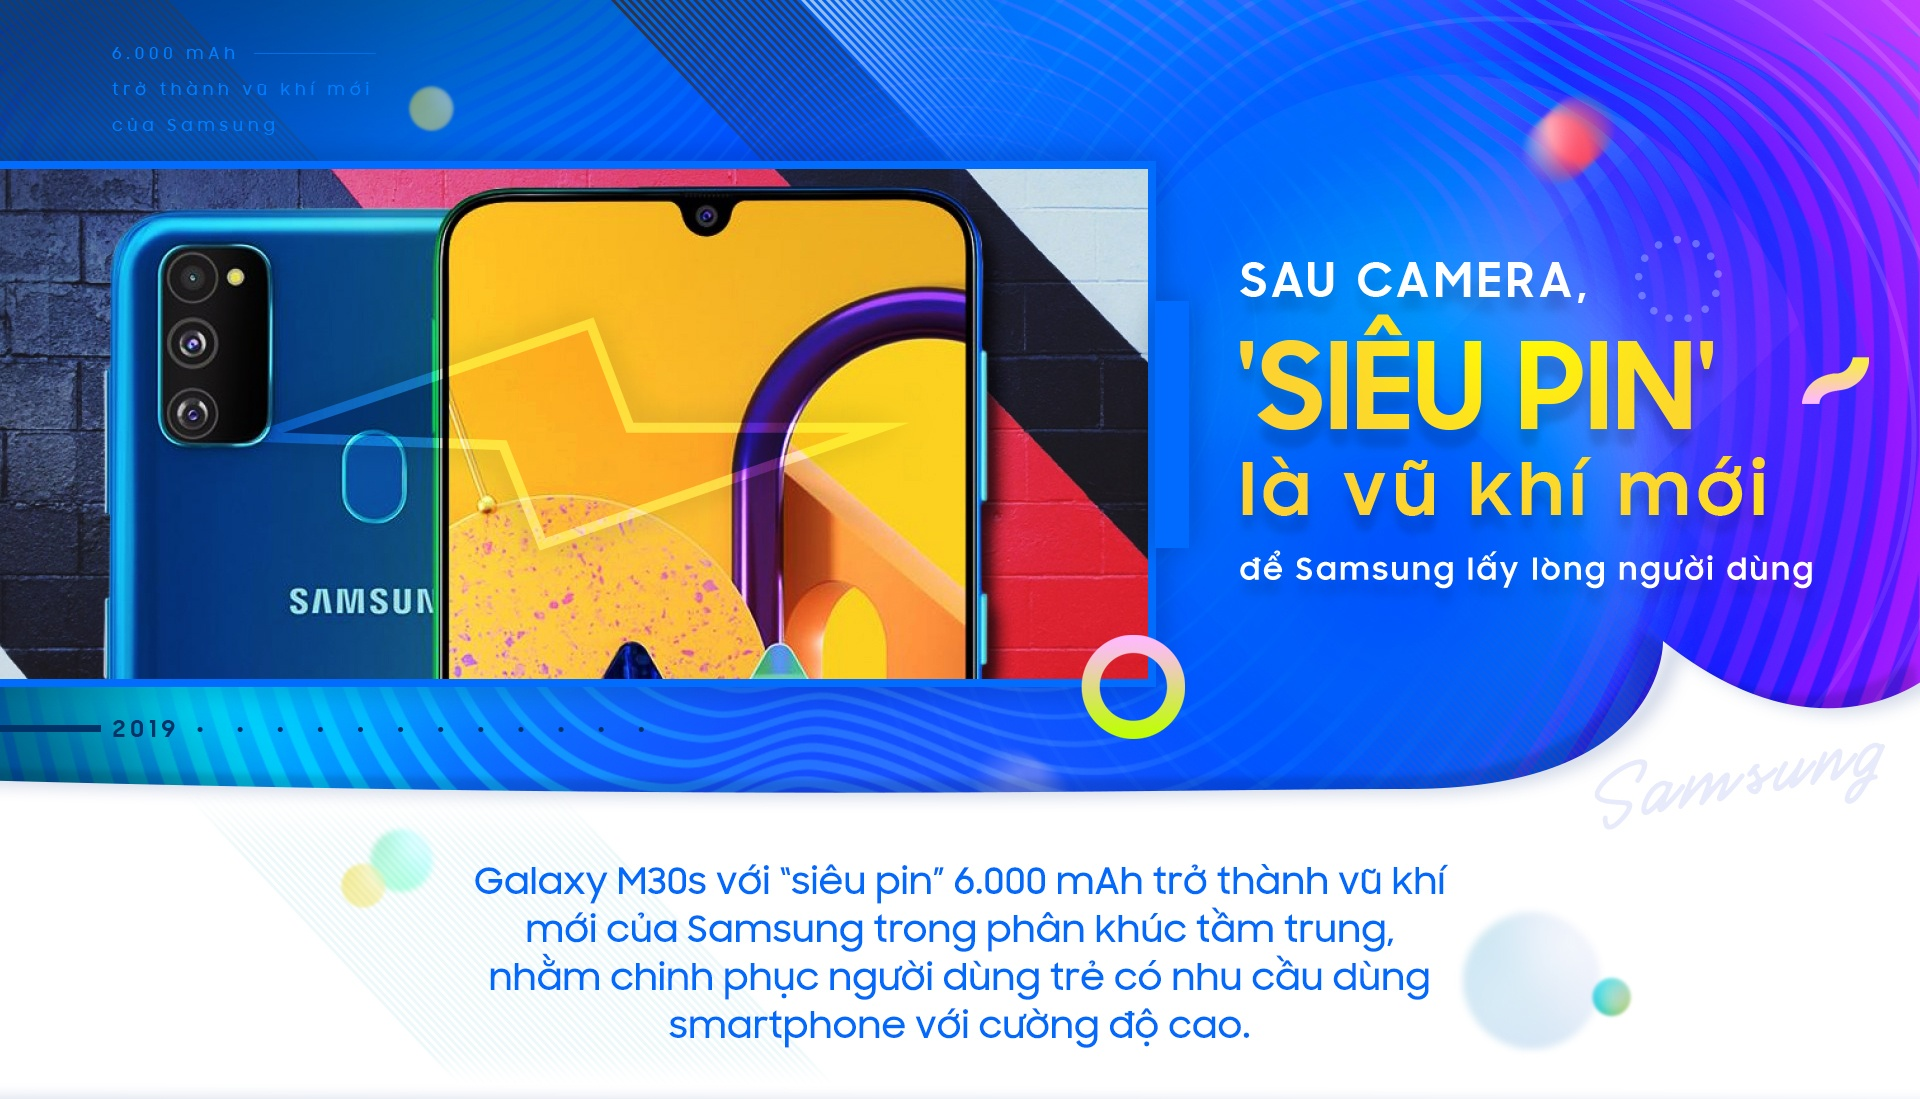 Samsung anh 2